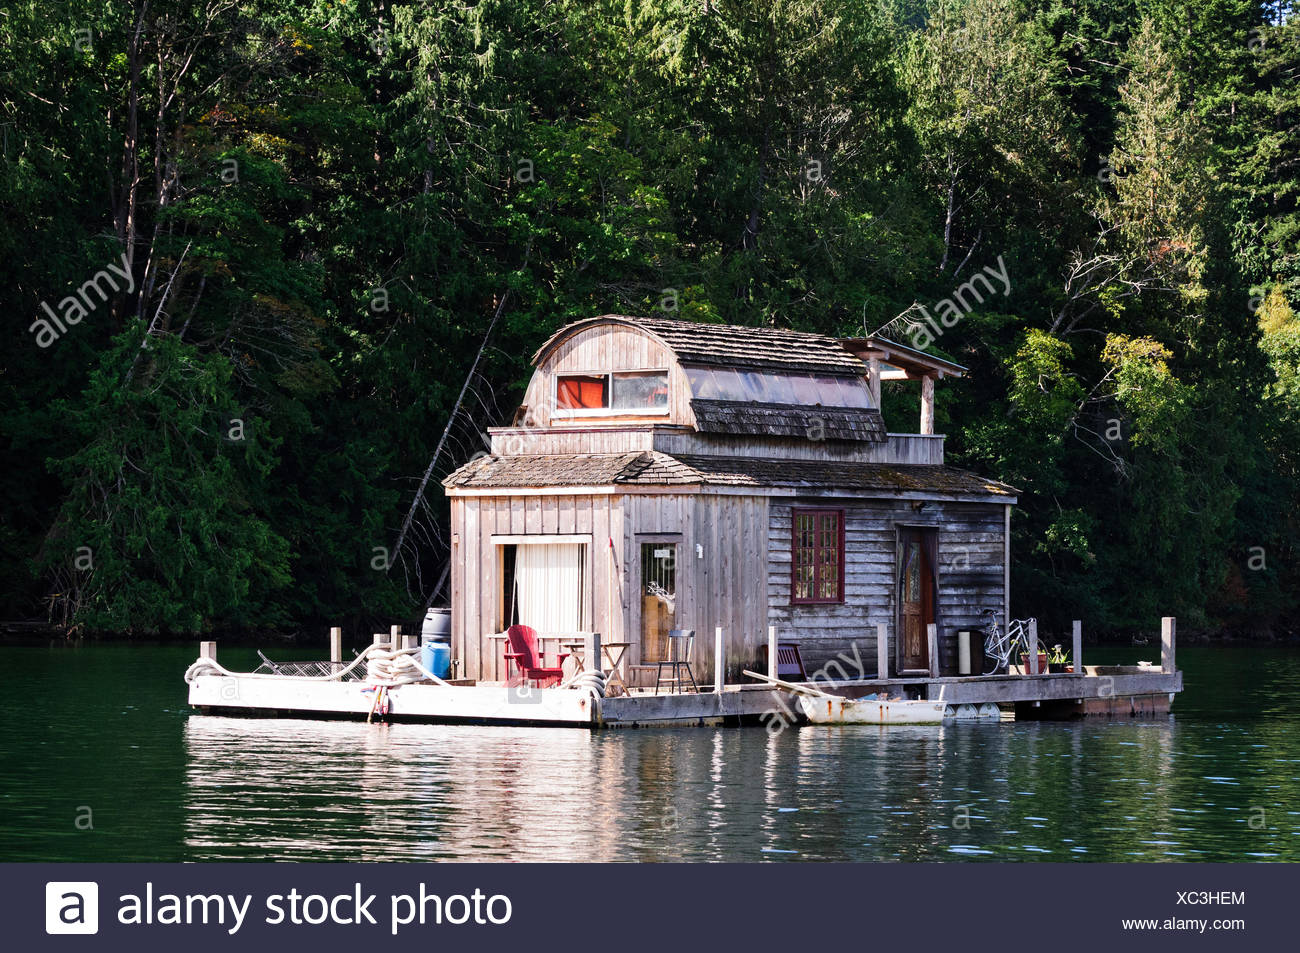 A float home anchored in Burgoyne Bay in Salt Spring Island, British Columbia. - Stock Image